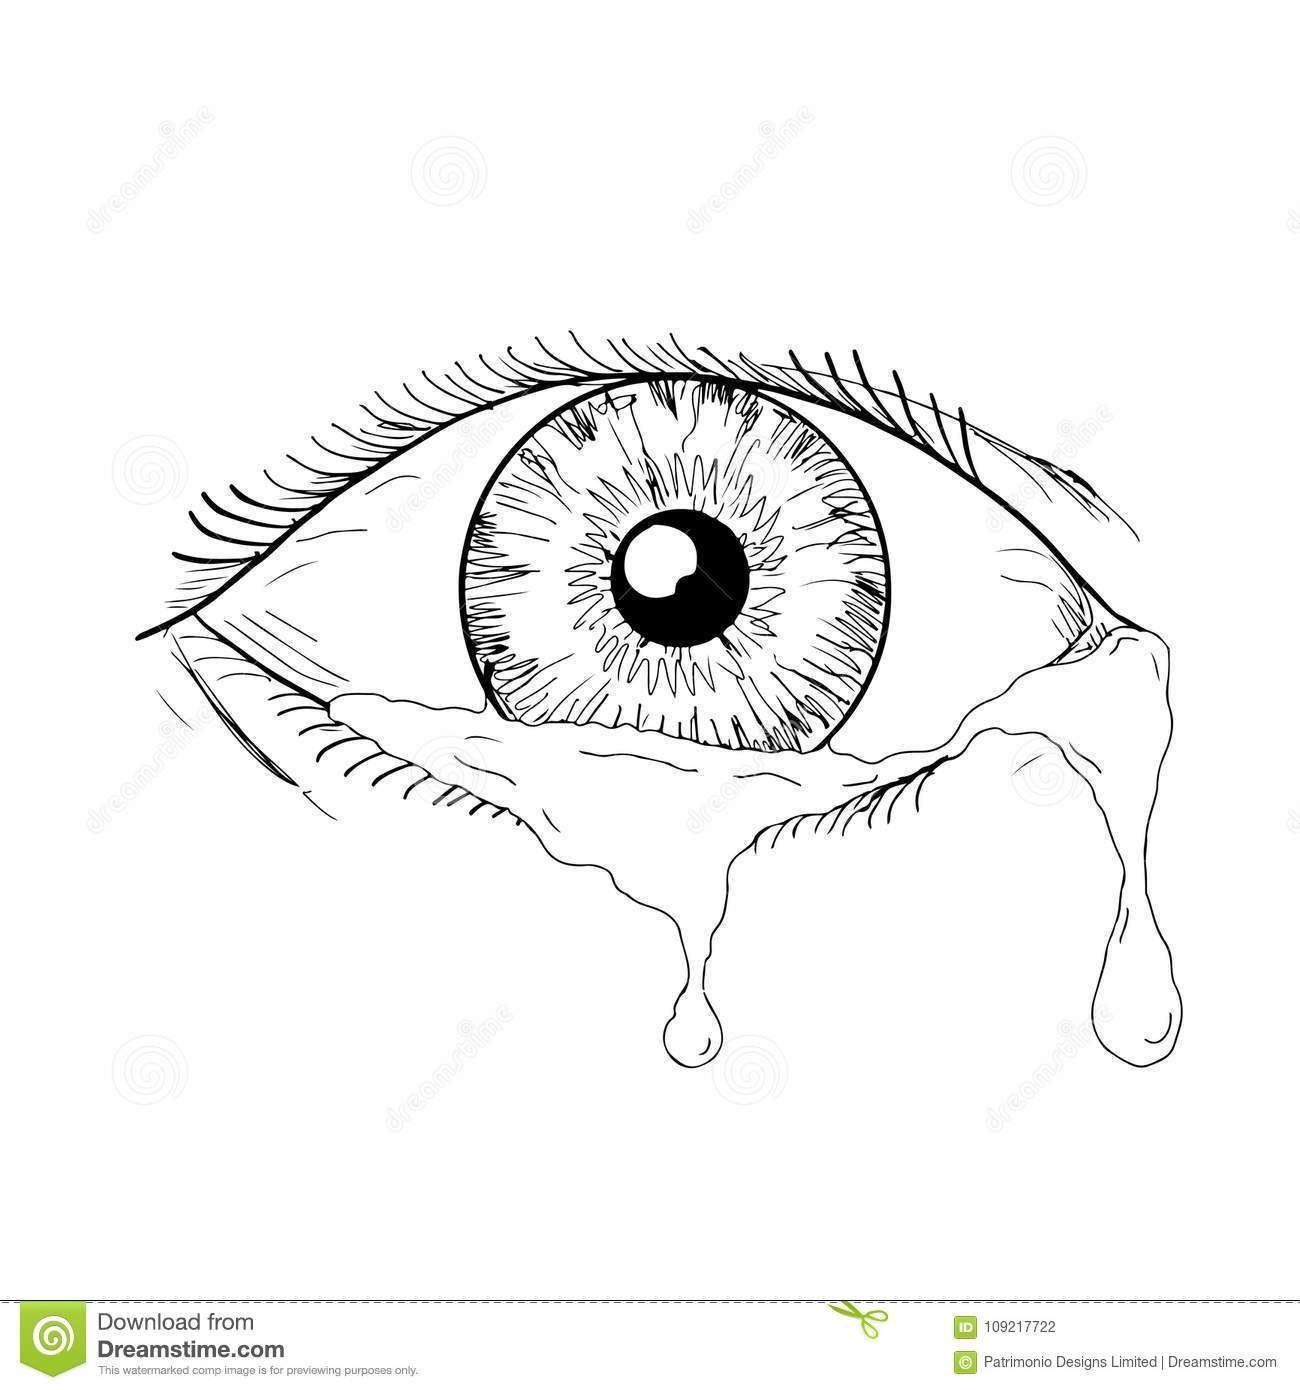 human eye crying tears flowing drawing stock vector